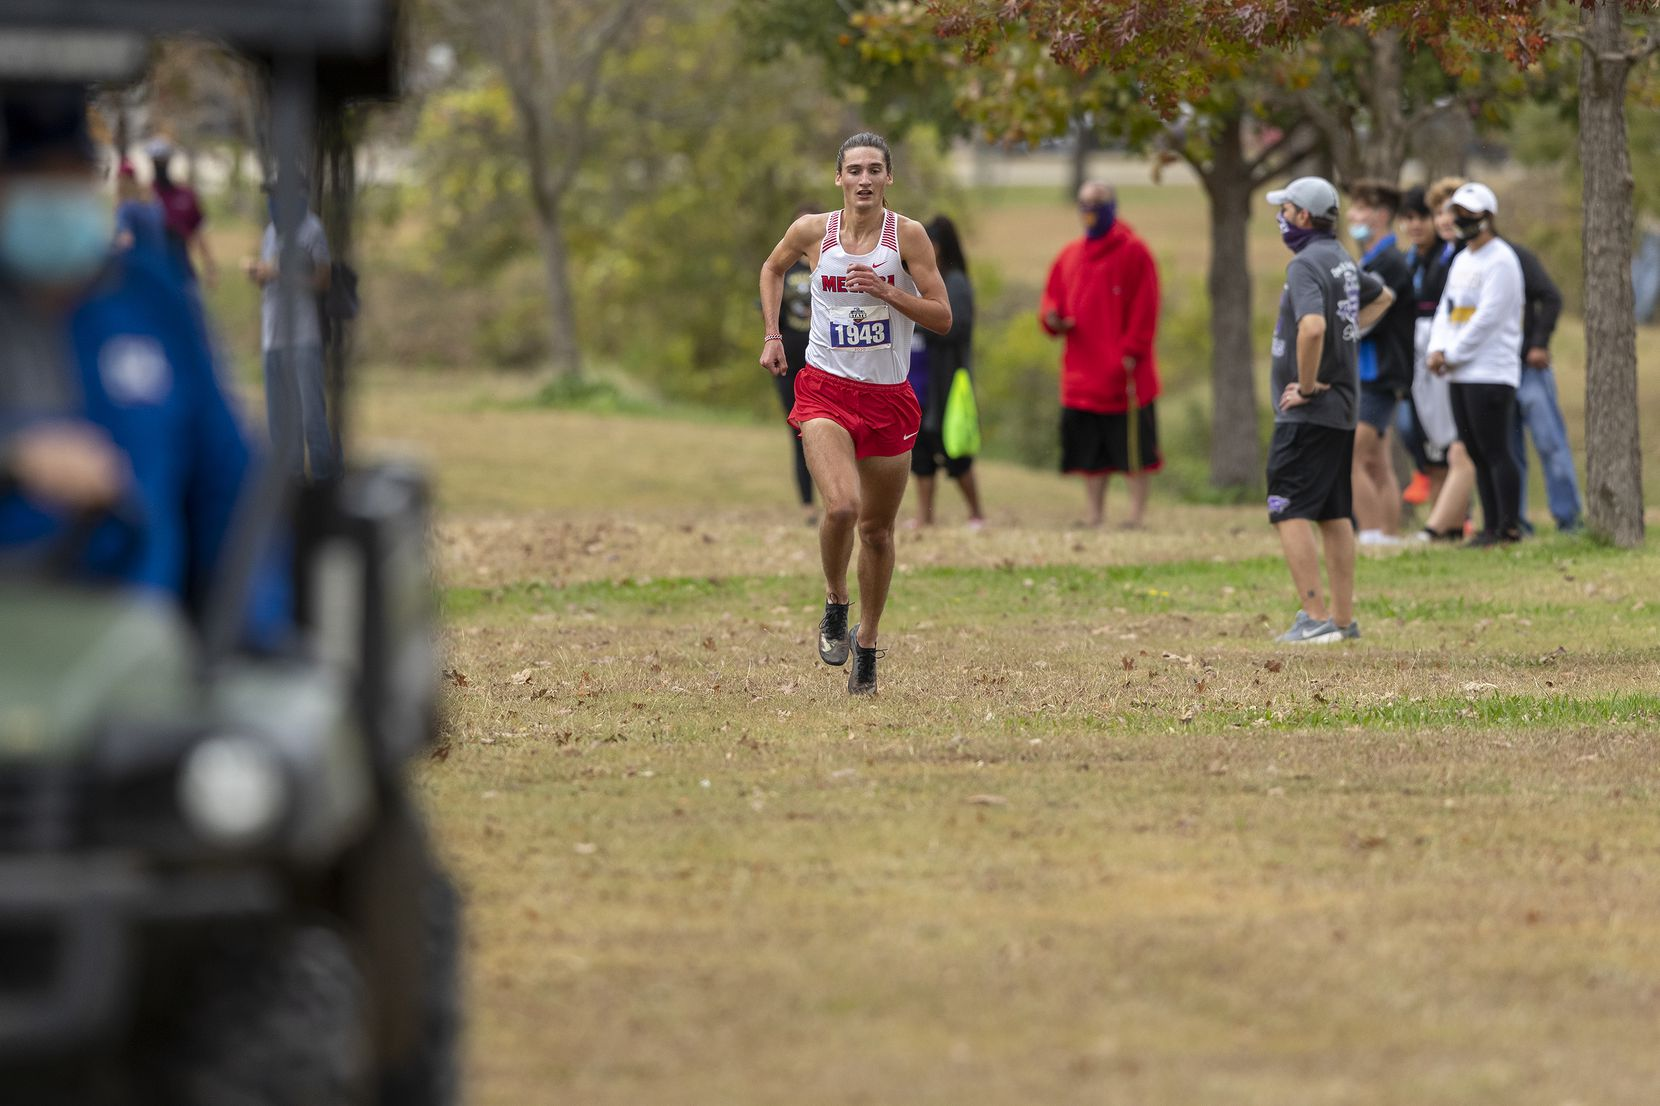 Melissa's Judson Greer (1943) finishes first in the boys UIL Class 4A state cross country meet in Round Rock, Tuesday, Nov., 24, 2020. (Stephen Spillman/Special Contributor)